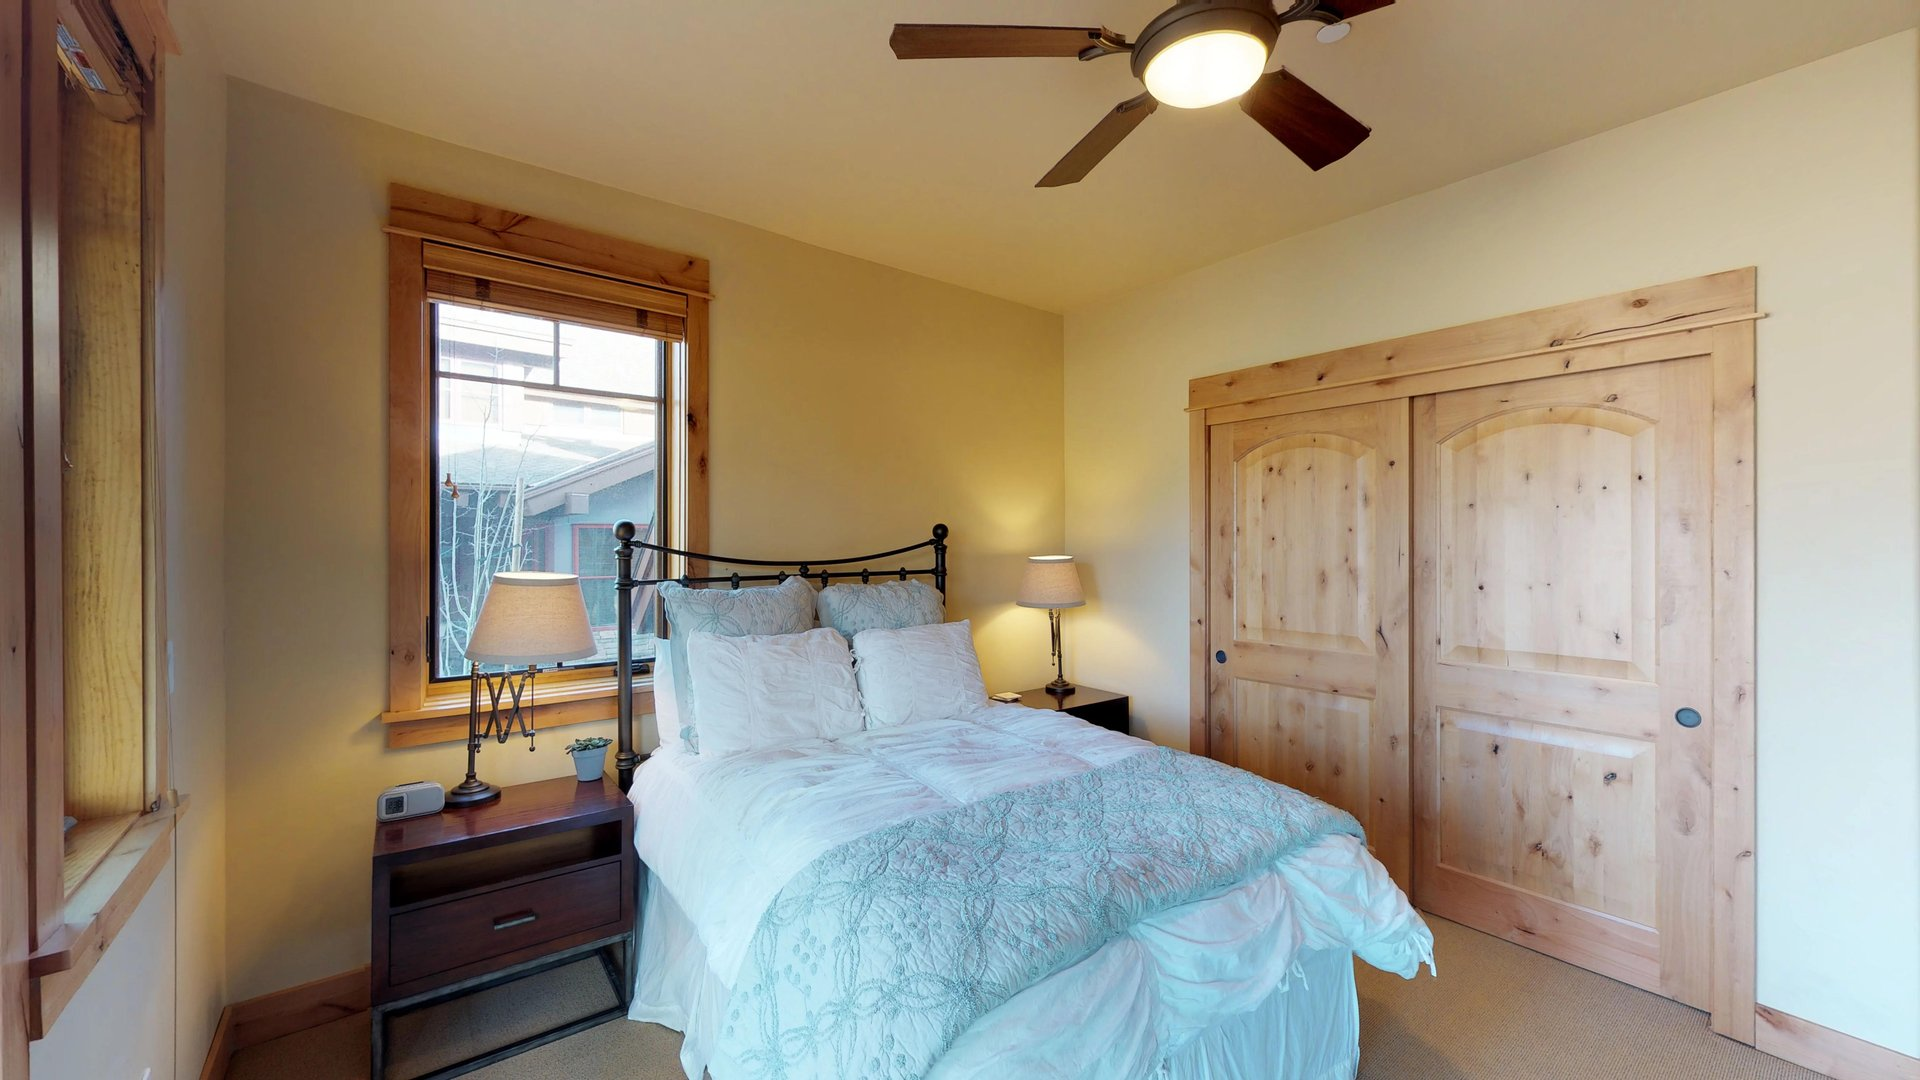 Bedroom in Vacation Rental in Truckee CA Includes Bed and Two Side Tables.